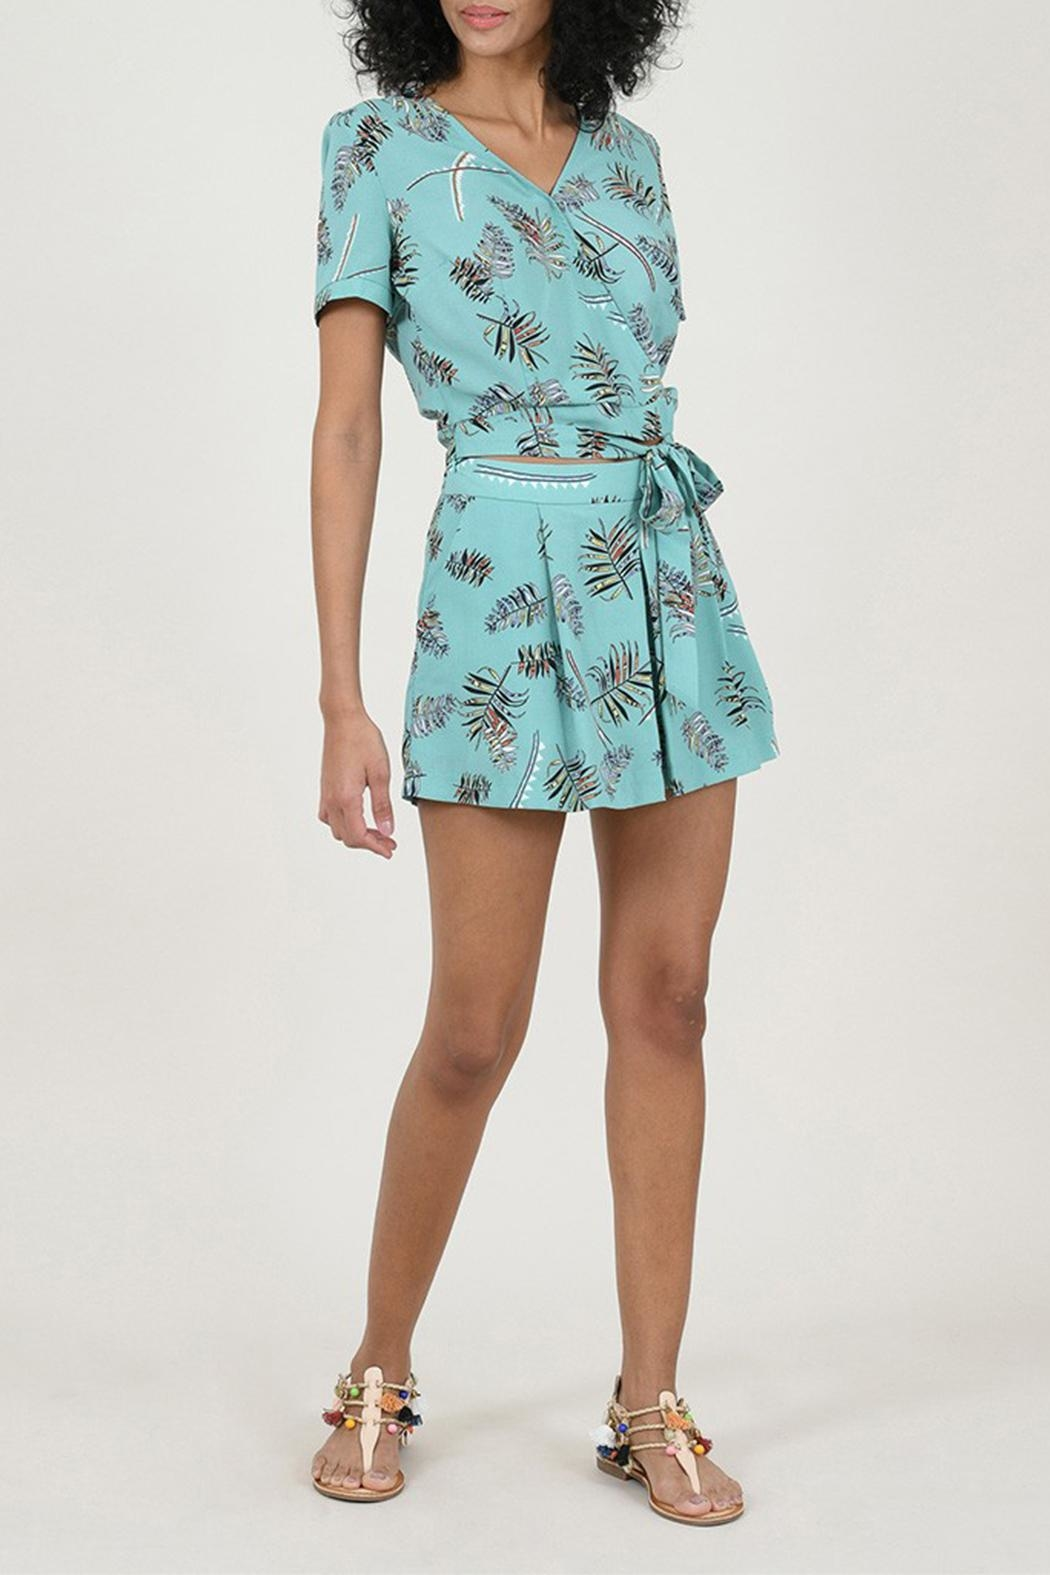 Molly Bracken Printed Top - Front Full Image